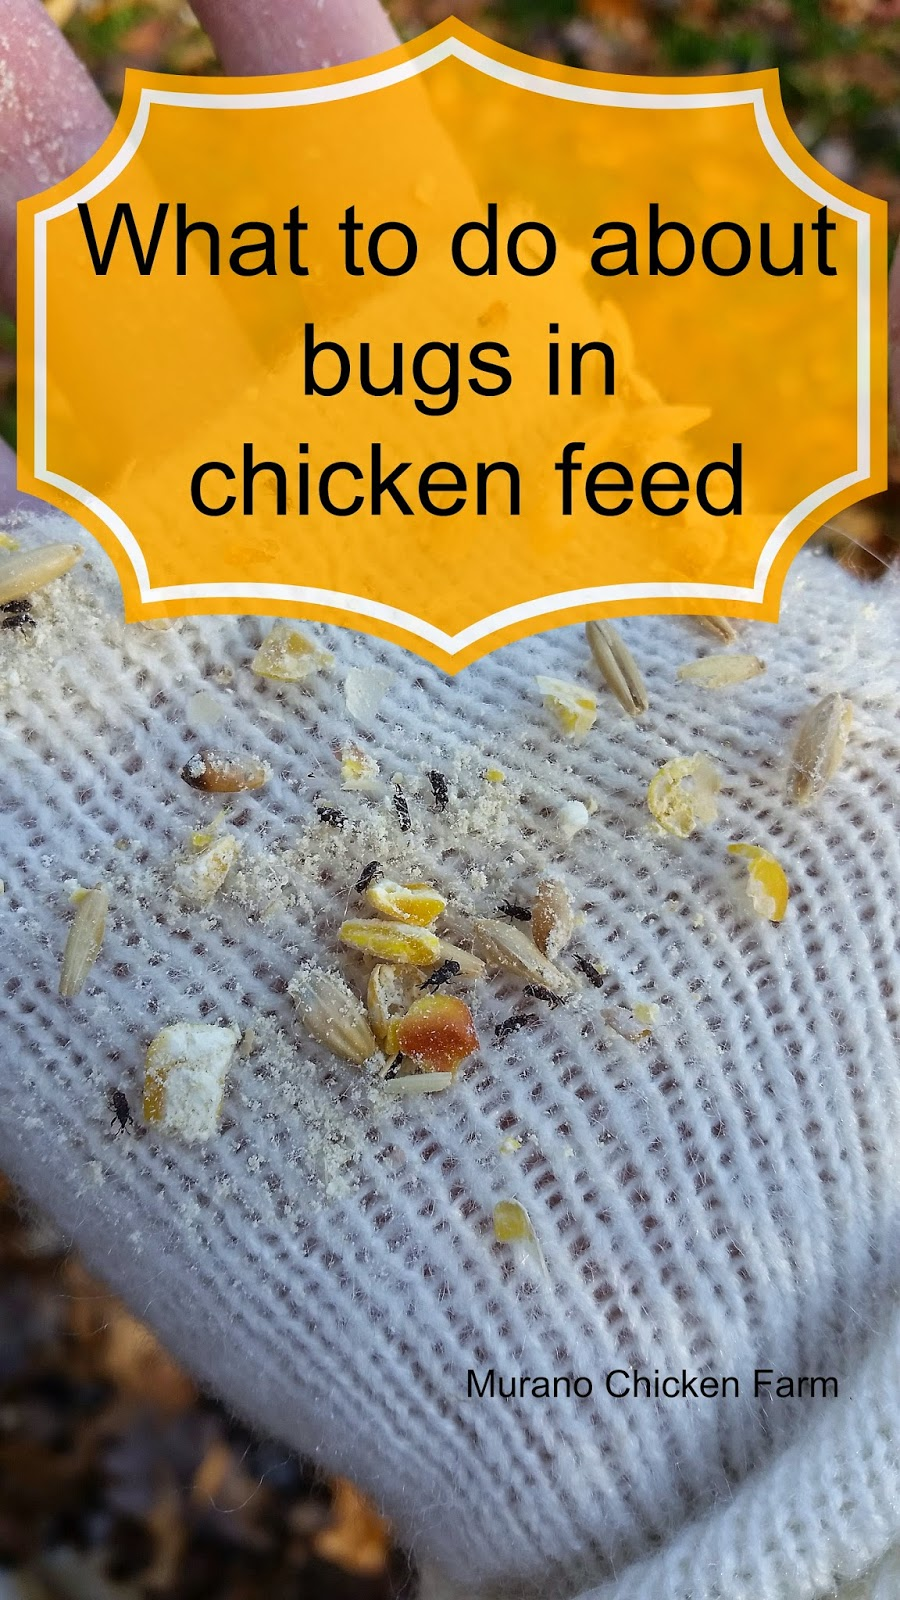 What to do about bugs in the chicken feed